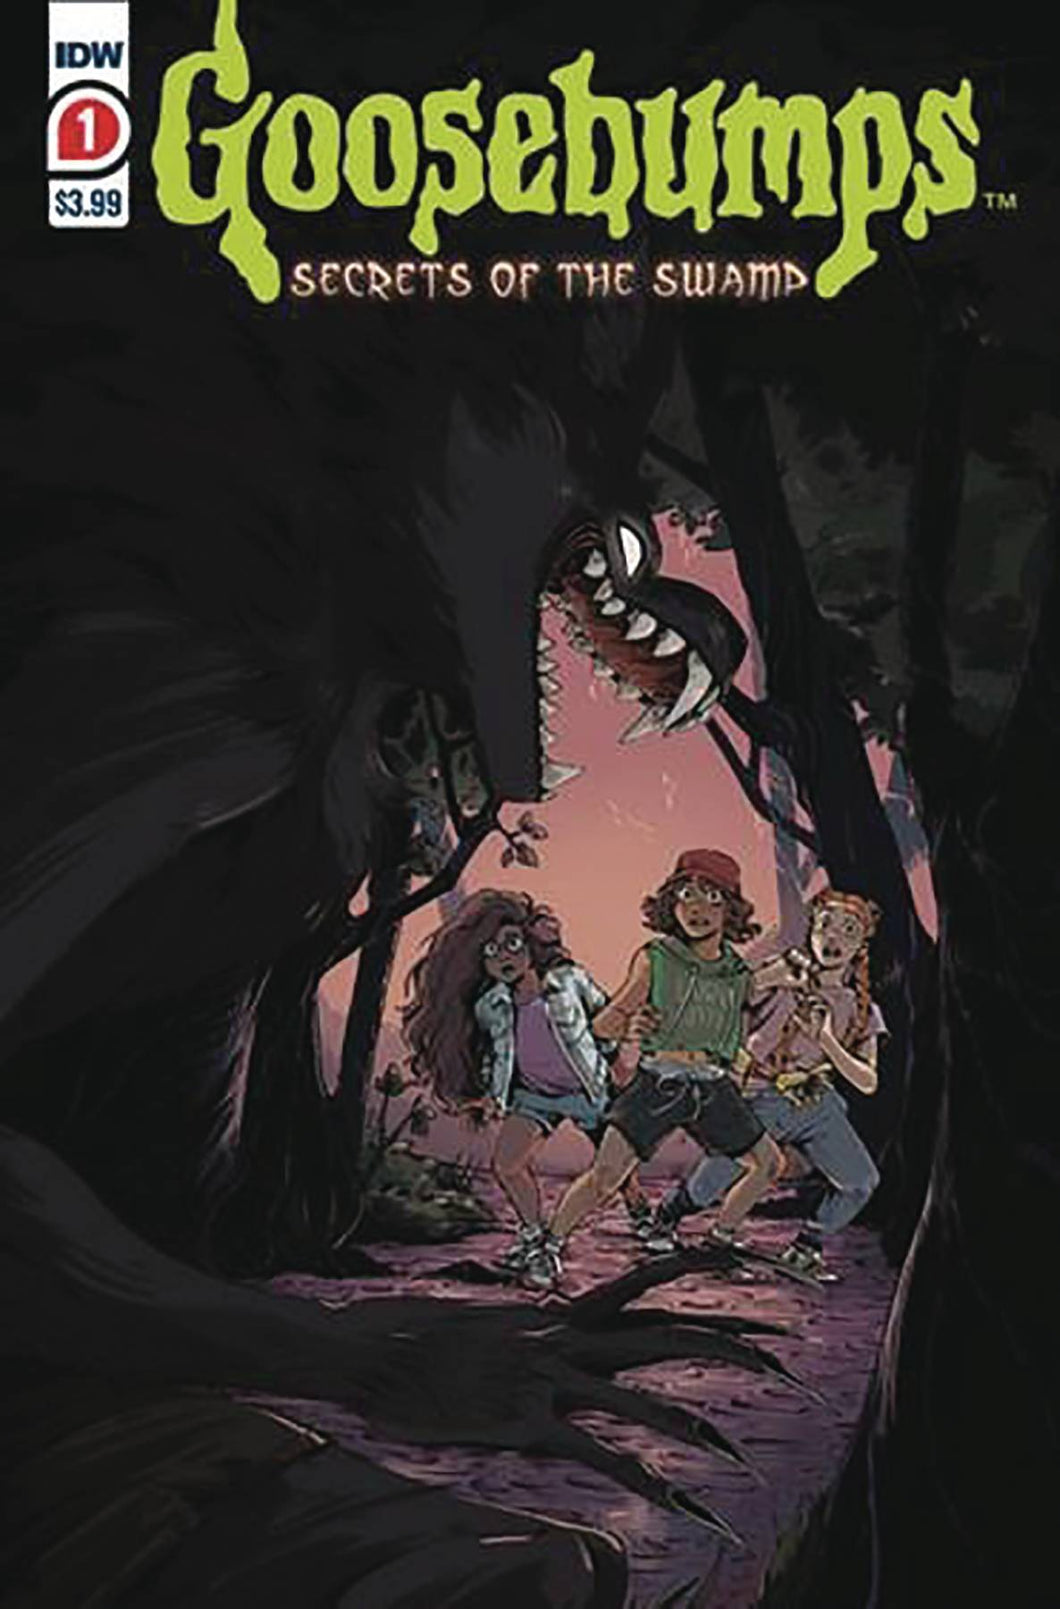 GOOSEBUMPS SECRETS OF THE SWAMP #1 (OF 5) 2ND PTG